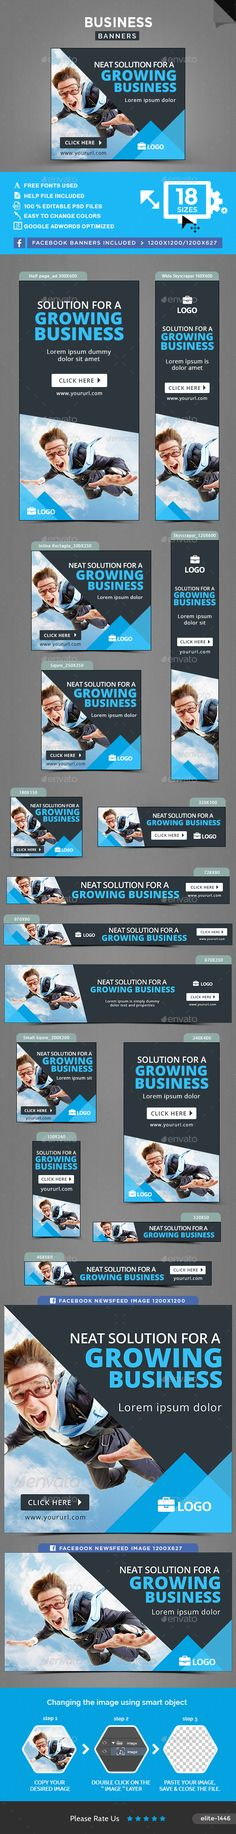 Business Banners Template PSD. Download here: http://graphicriver.net/item/business-banners/15995838?ref=ksioks